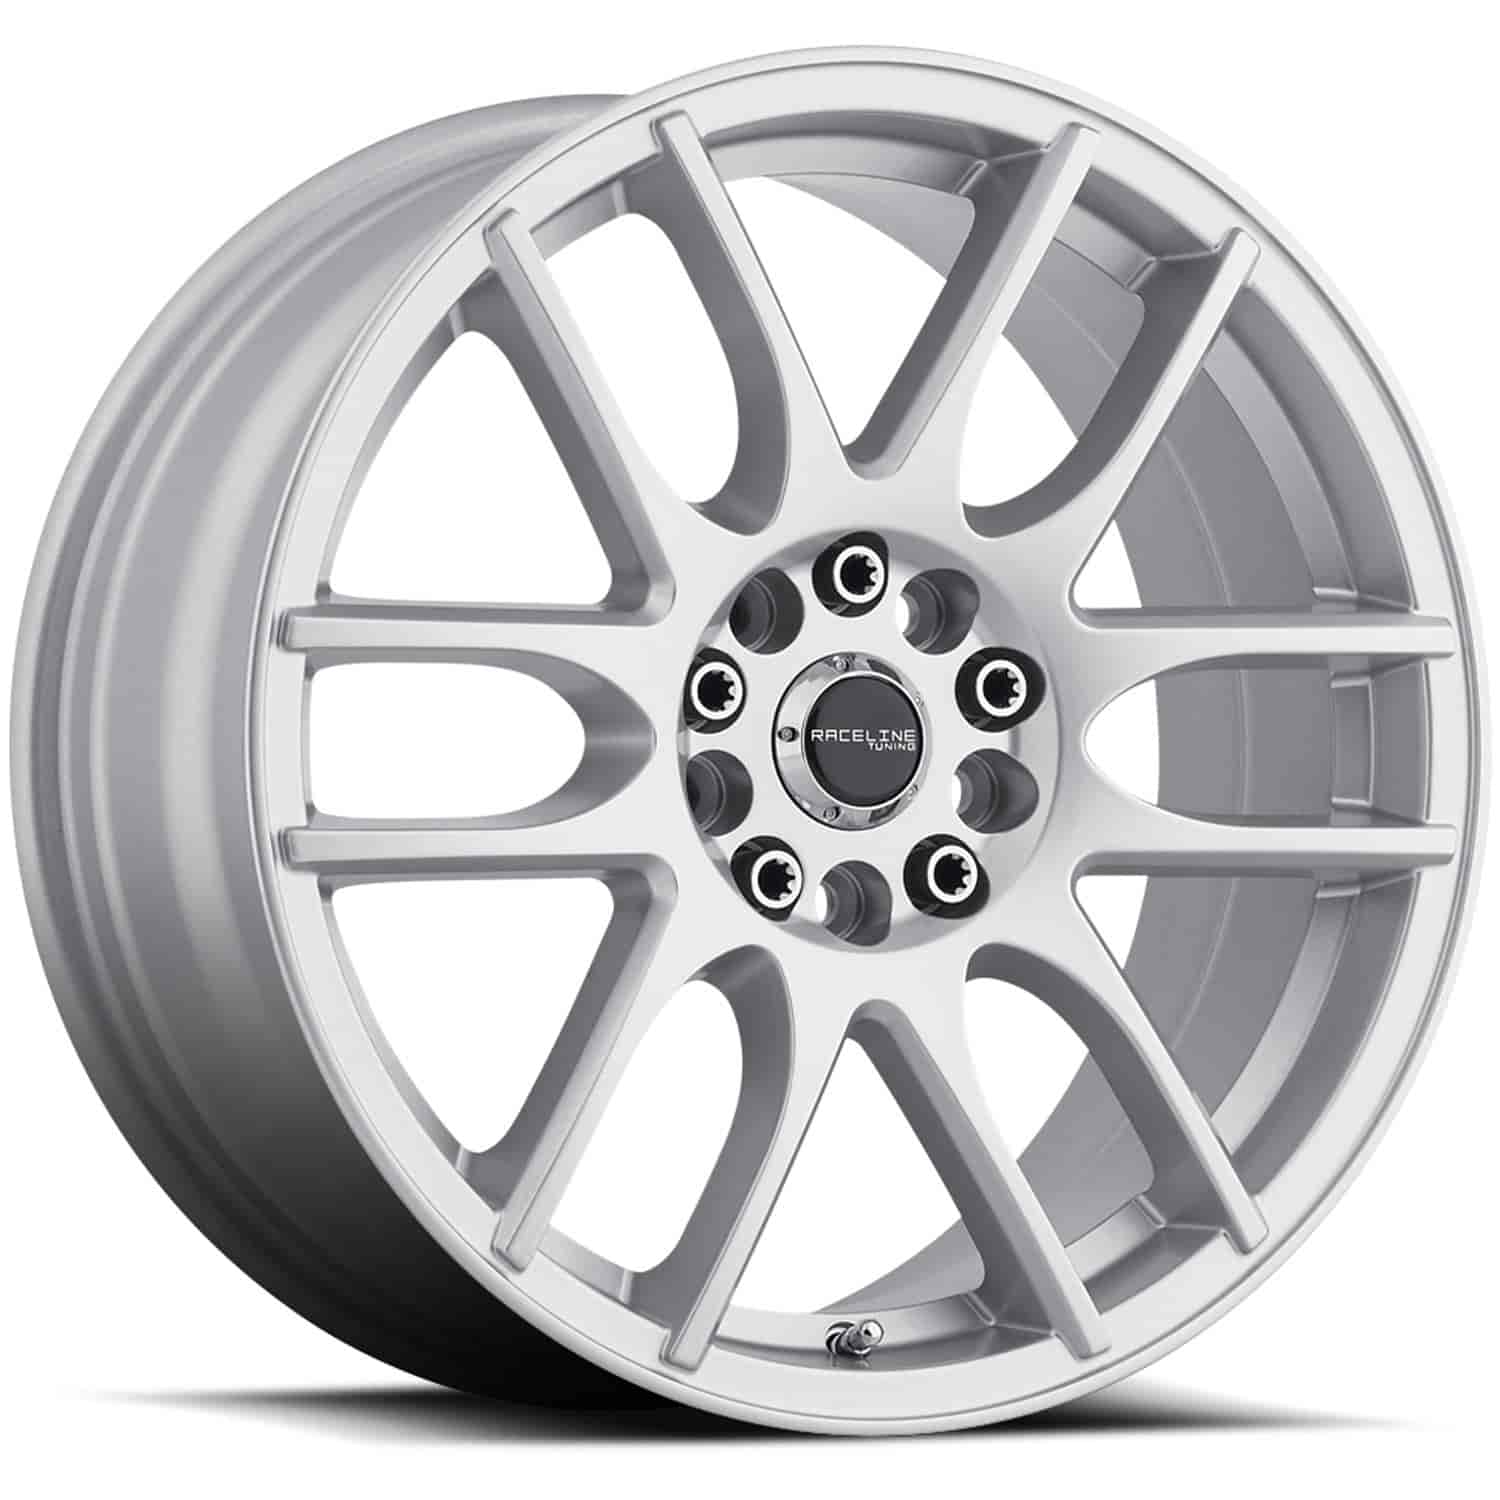 Raceline Wheels 141S7758940